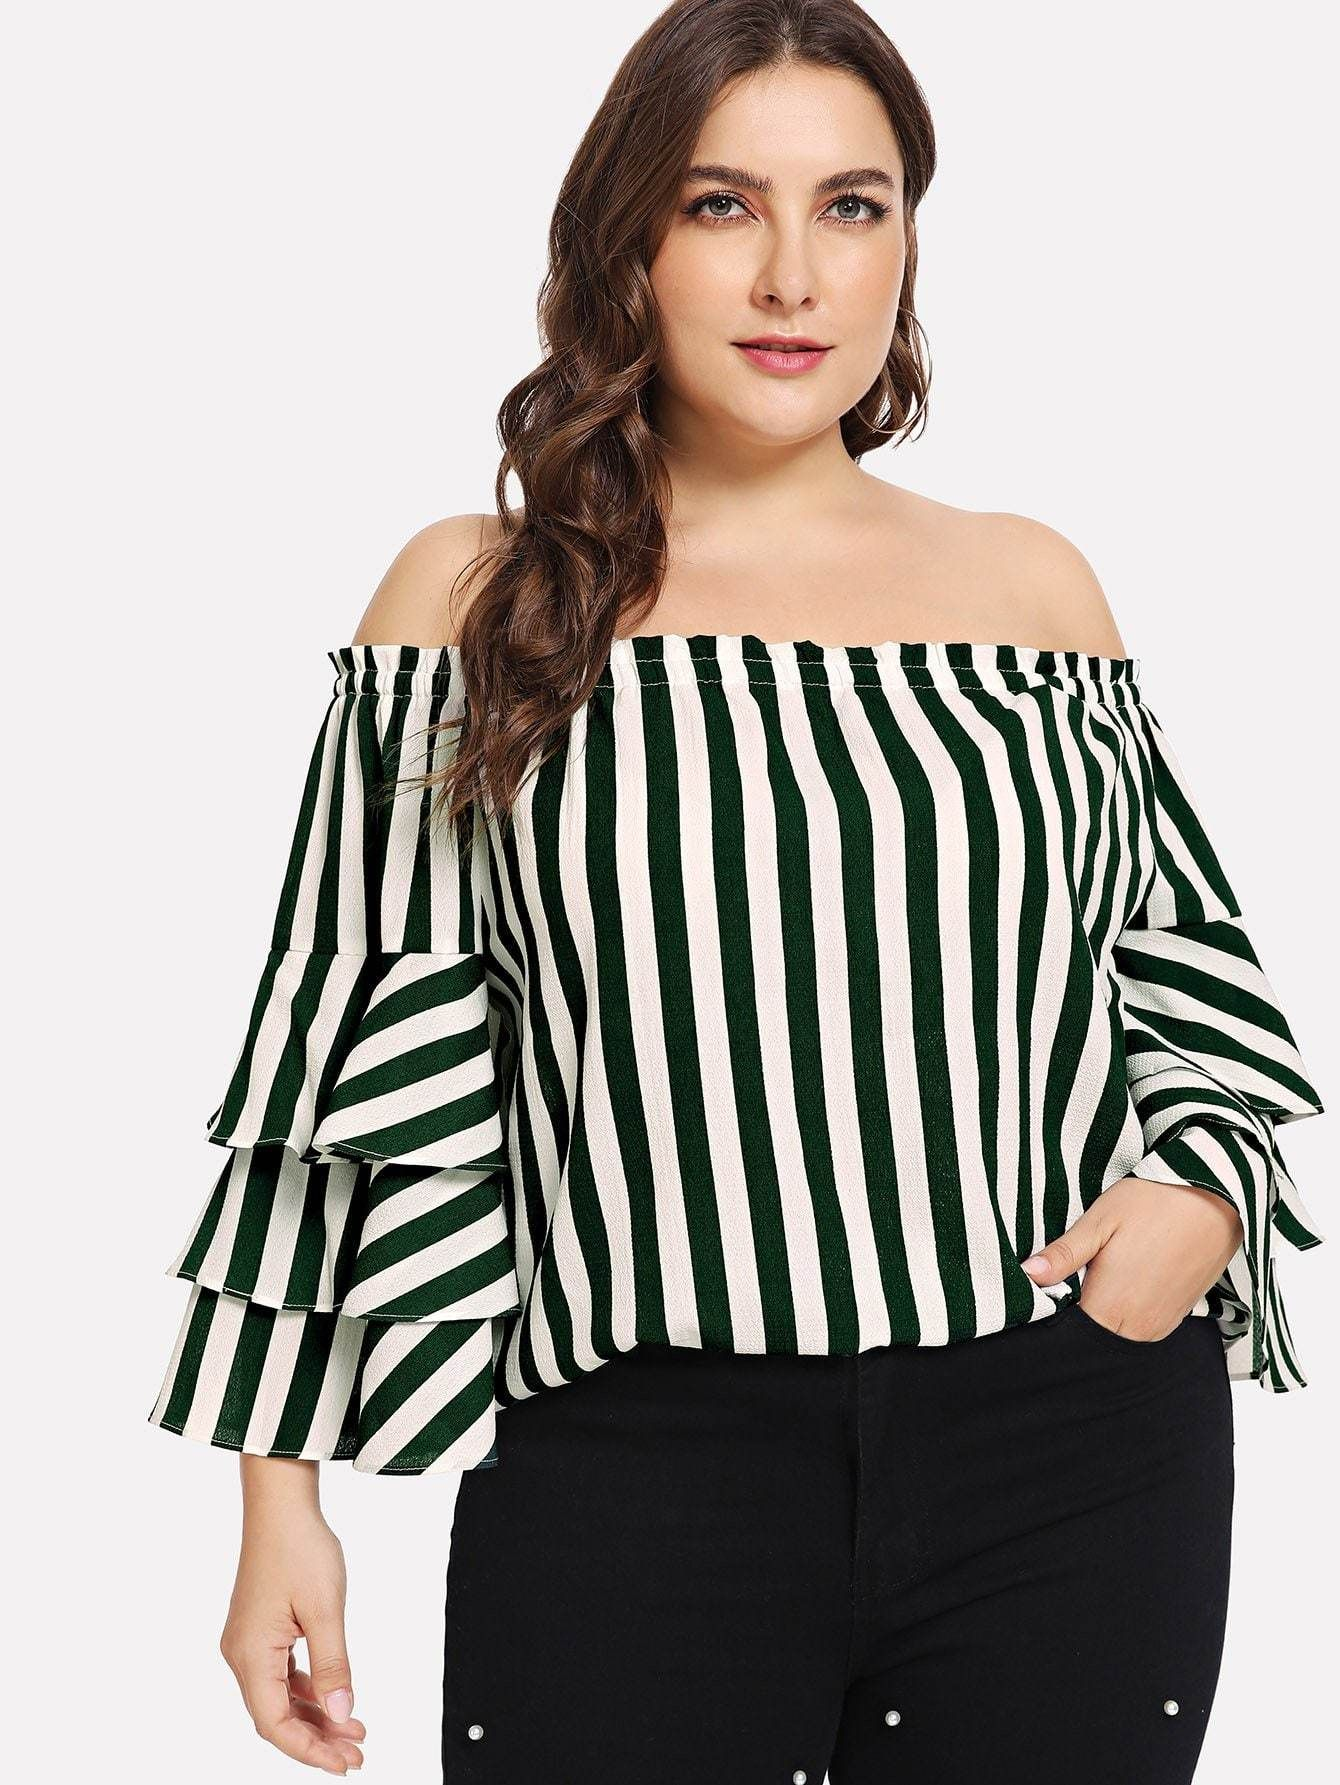 7b45ddaaeac Plus Size Layered Sleeve Off Shoulder Green & White Striped Top FREE SHIP